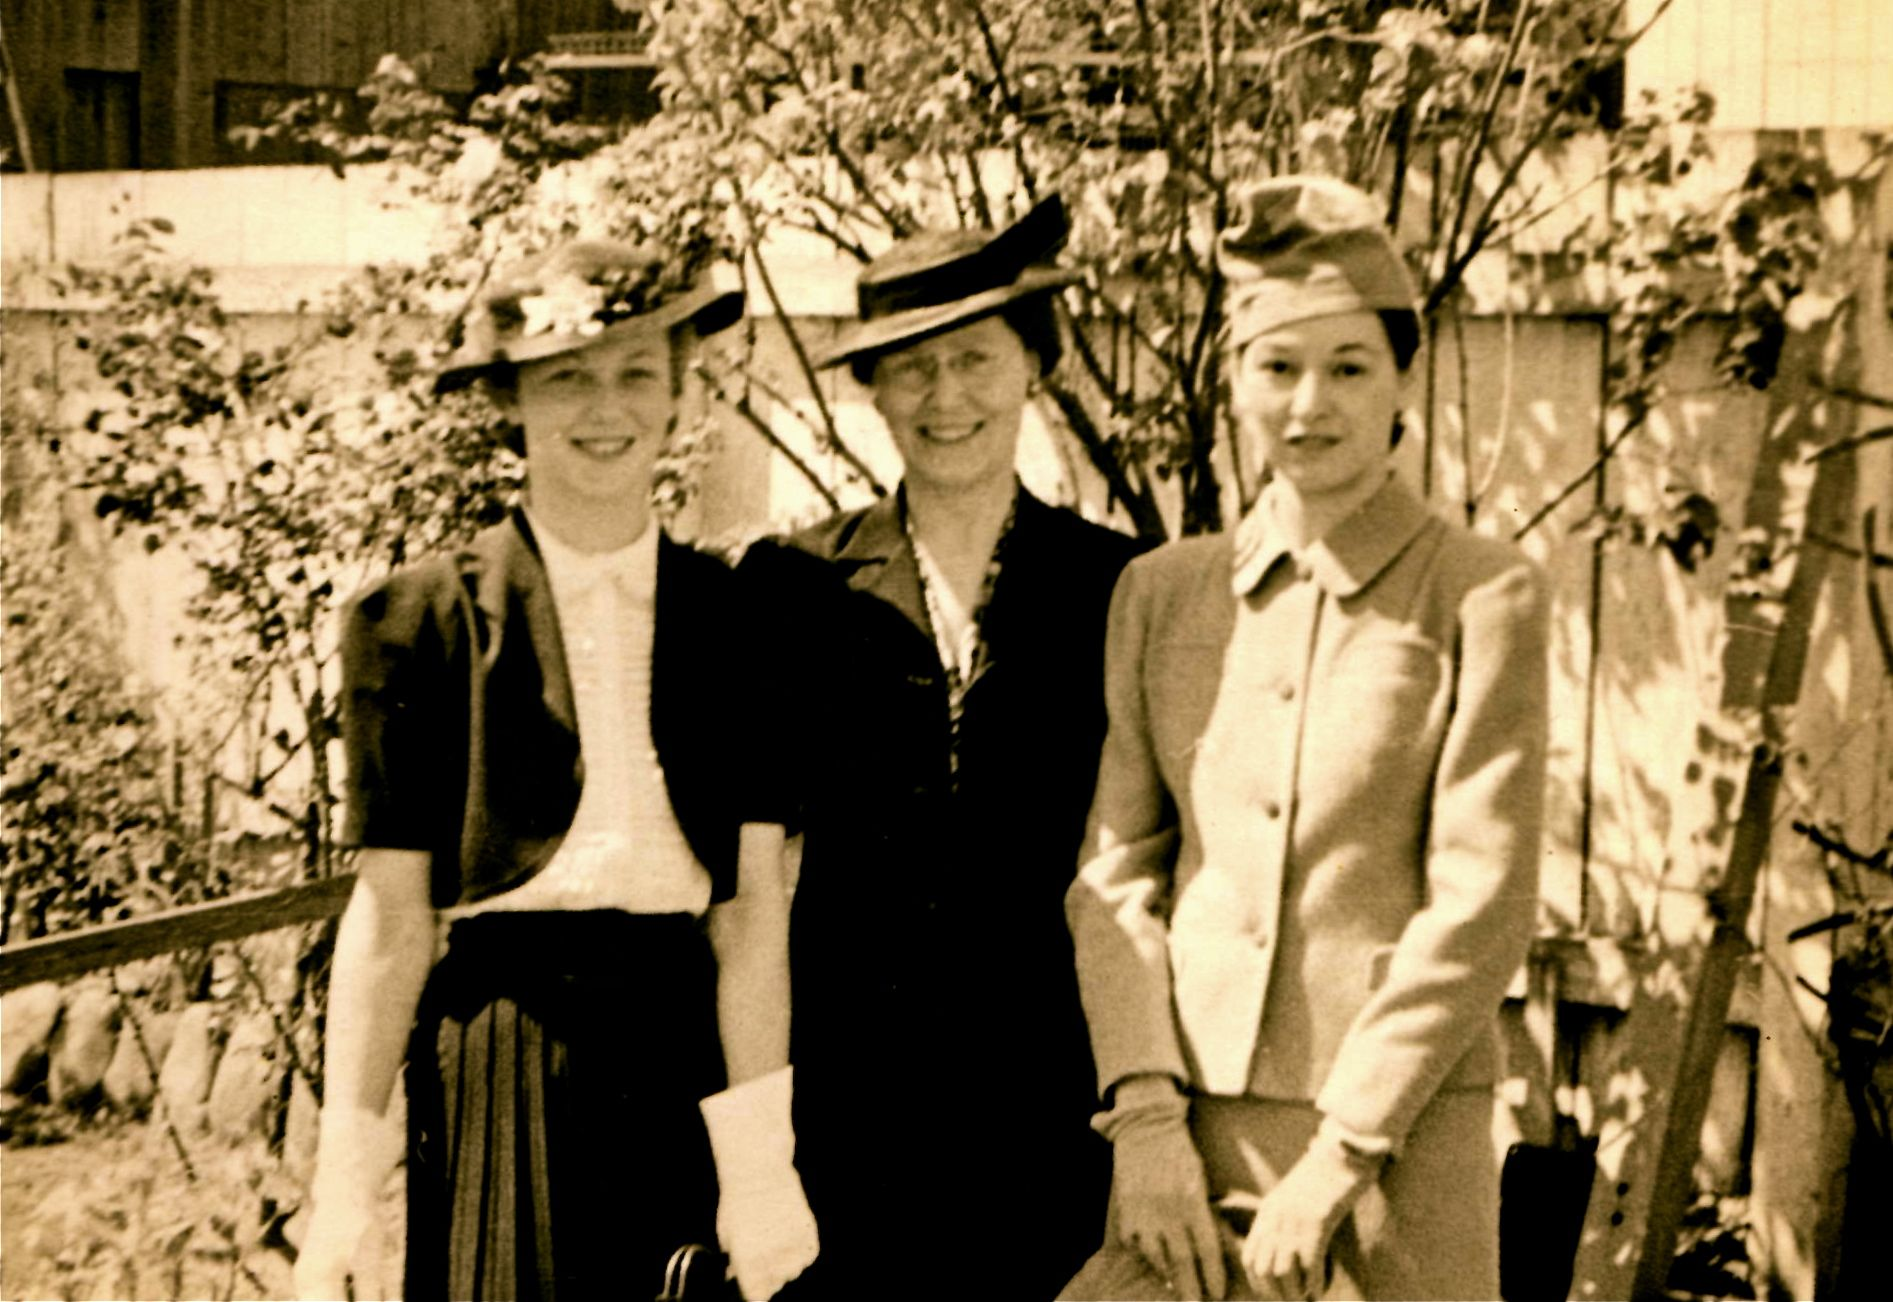 My Aunt Jean Wright Miller, grandmother Nettie Irene Wright, and mom Elsie Wieser Wright looking stylish.